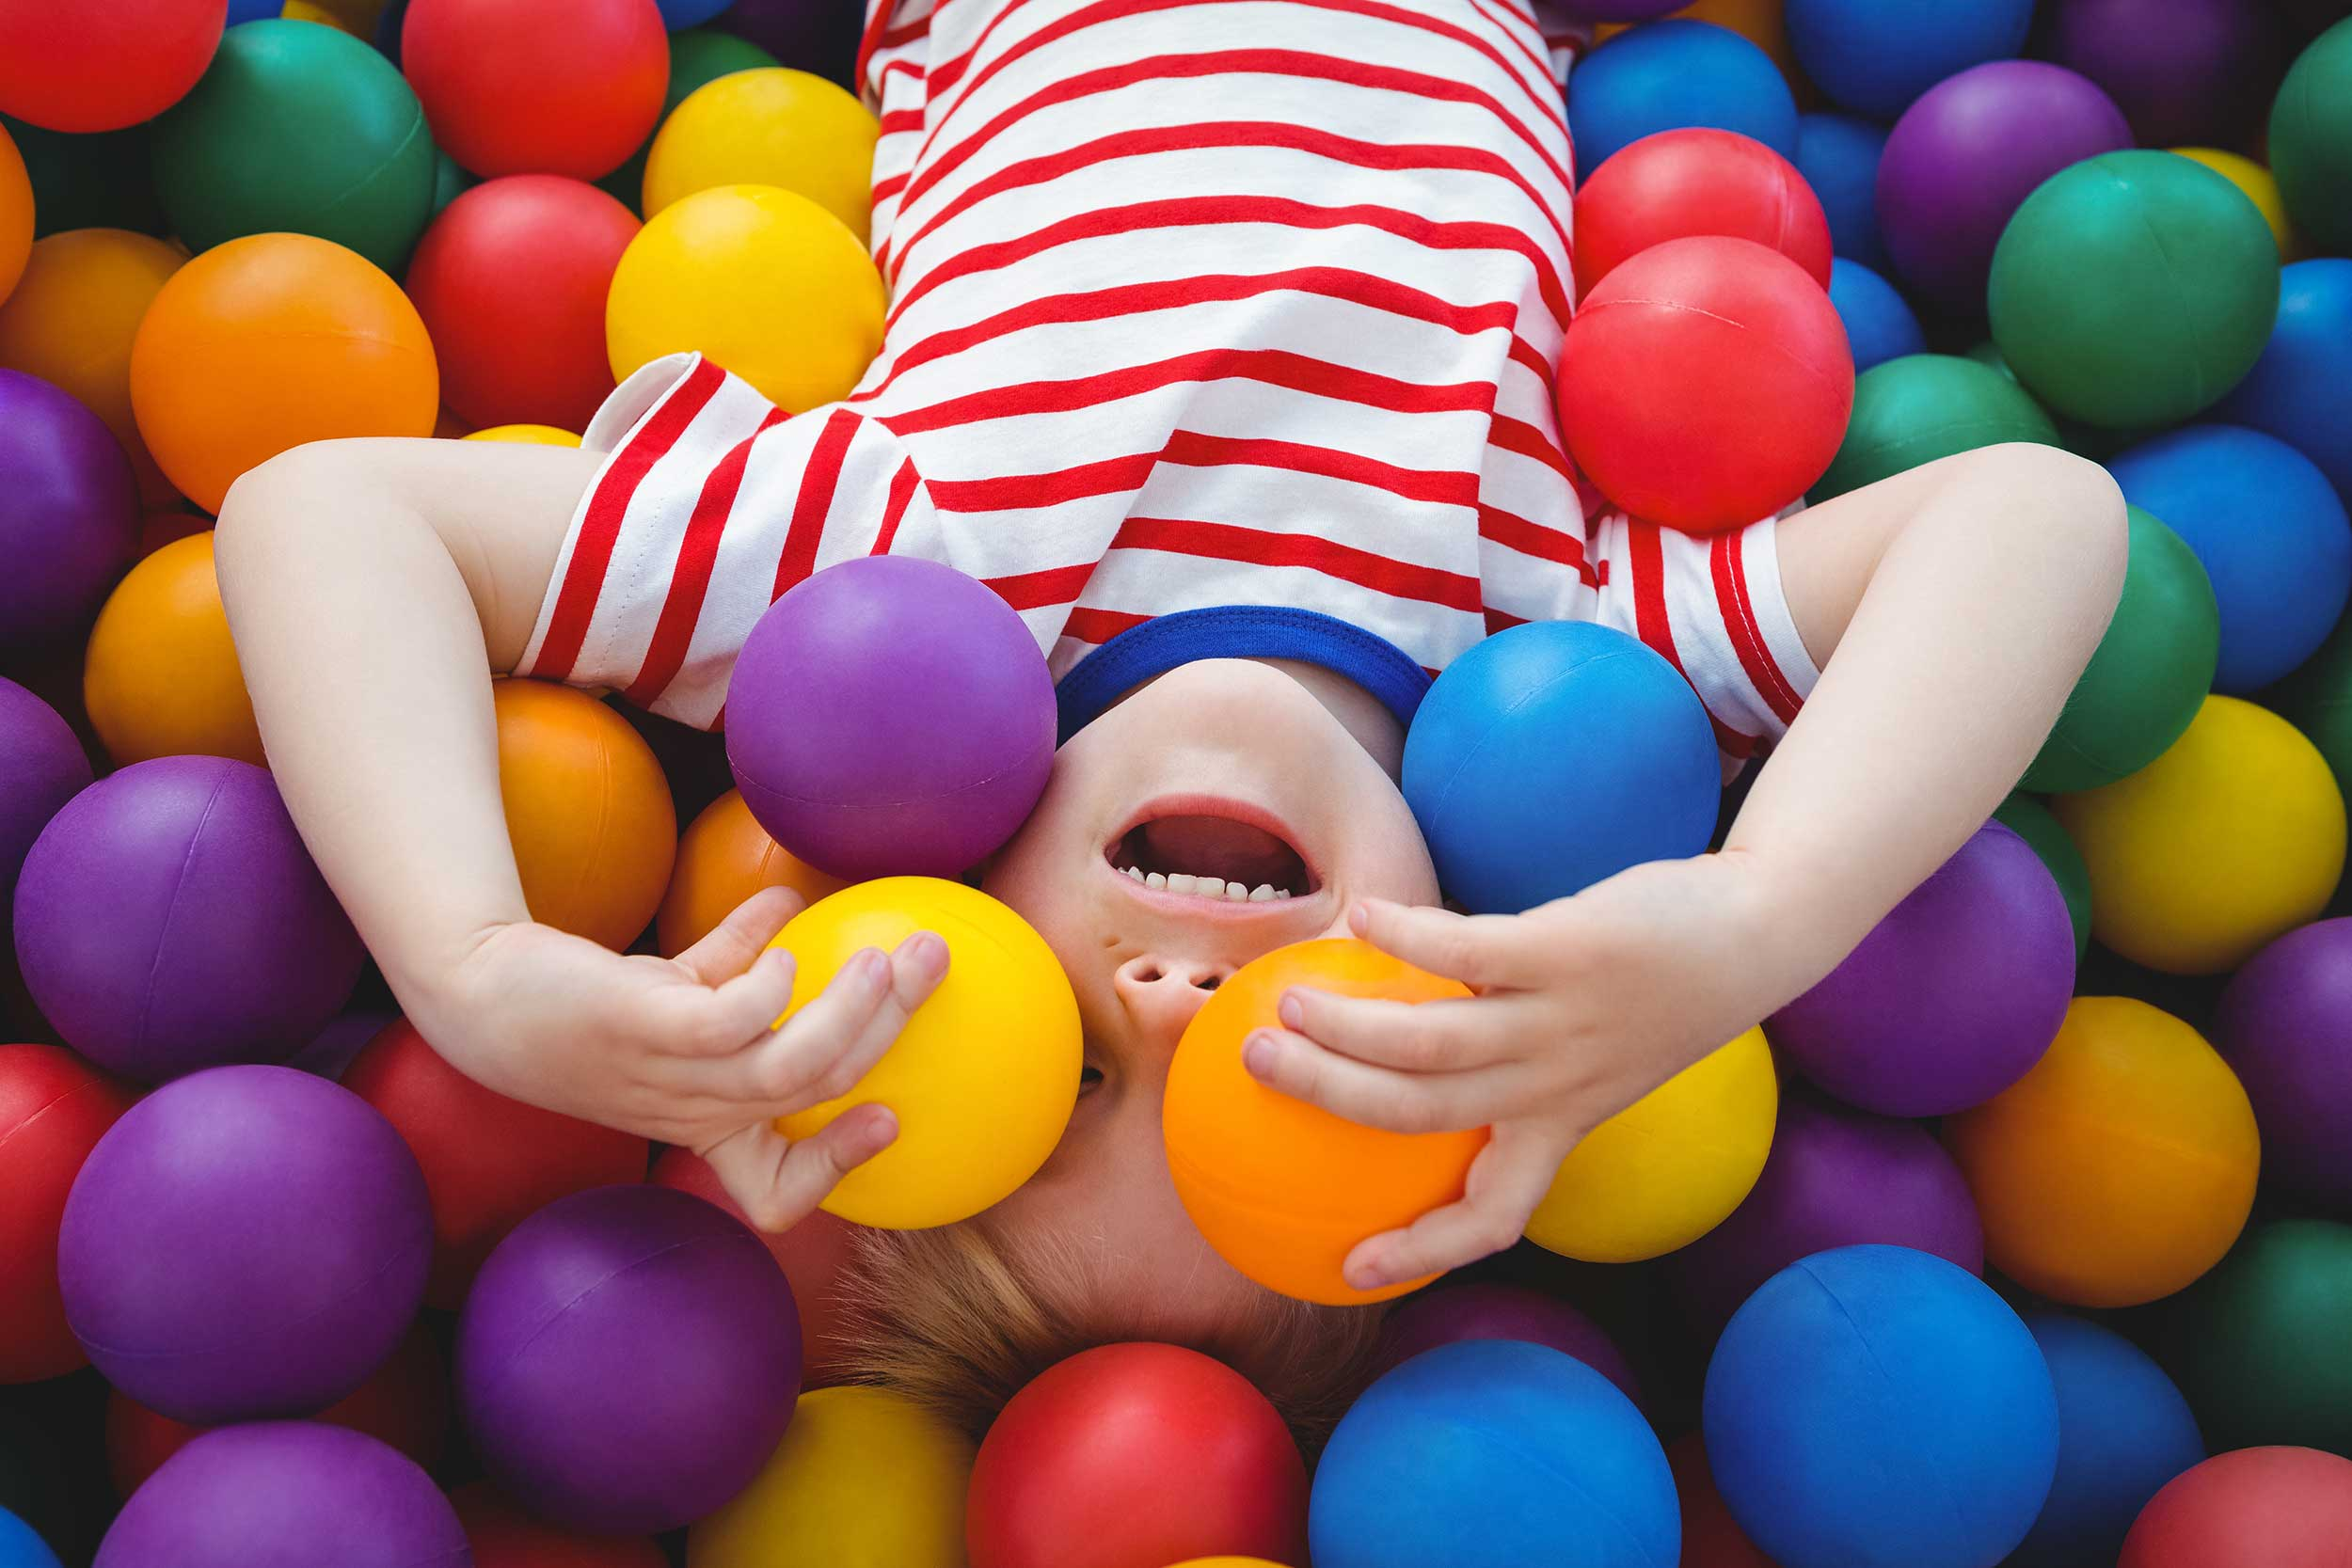 Kid in a colourful ball pit